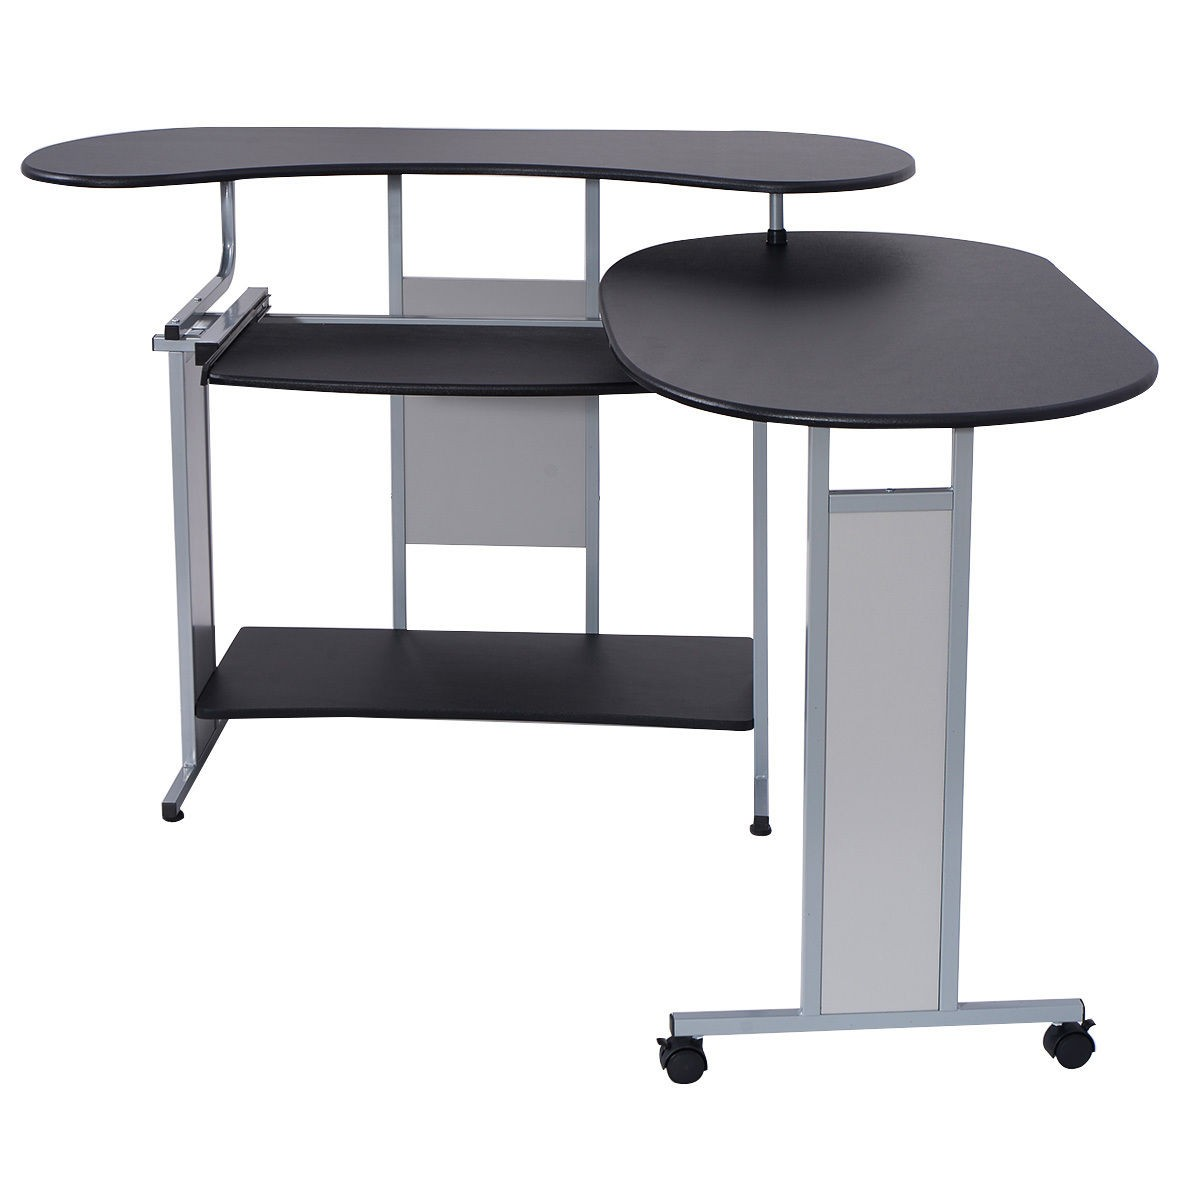 height desks desk vintage sit expandable pin adjustable dining table extendable and